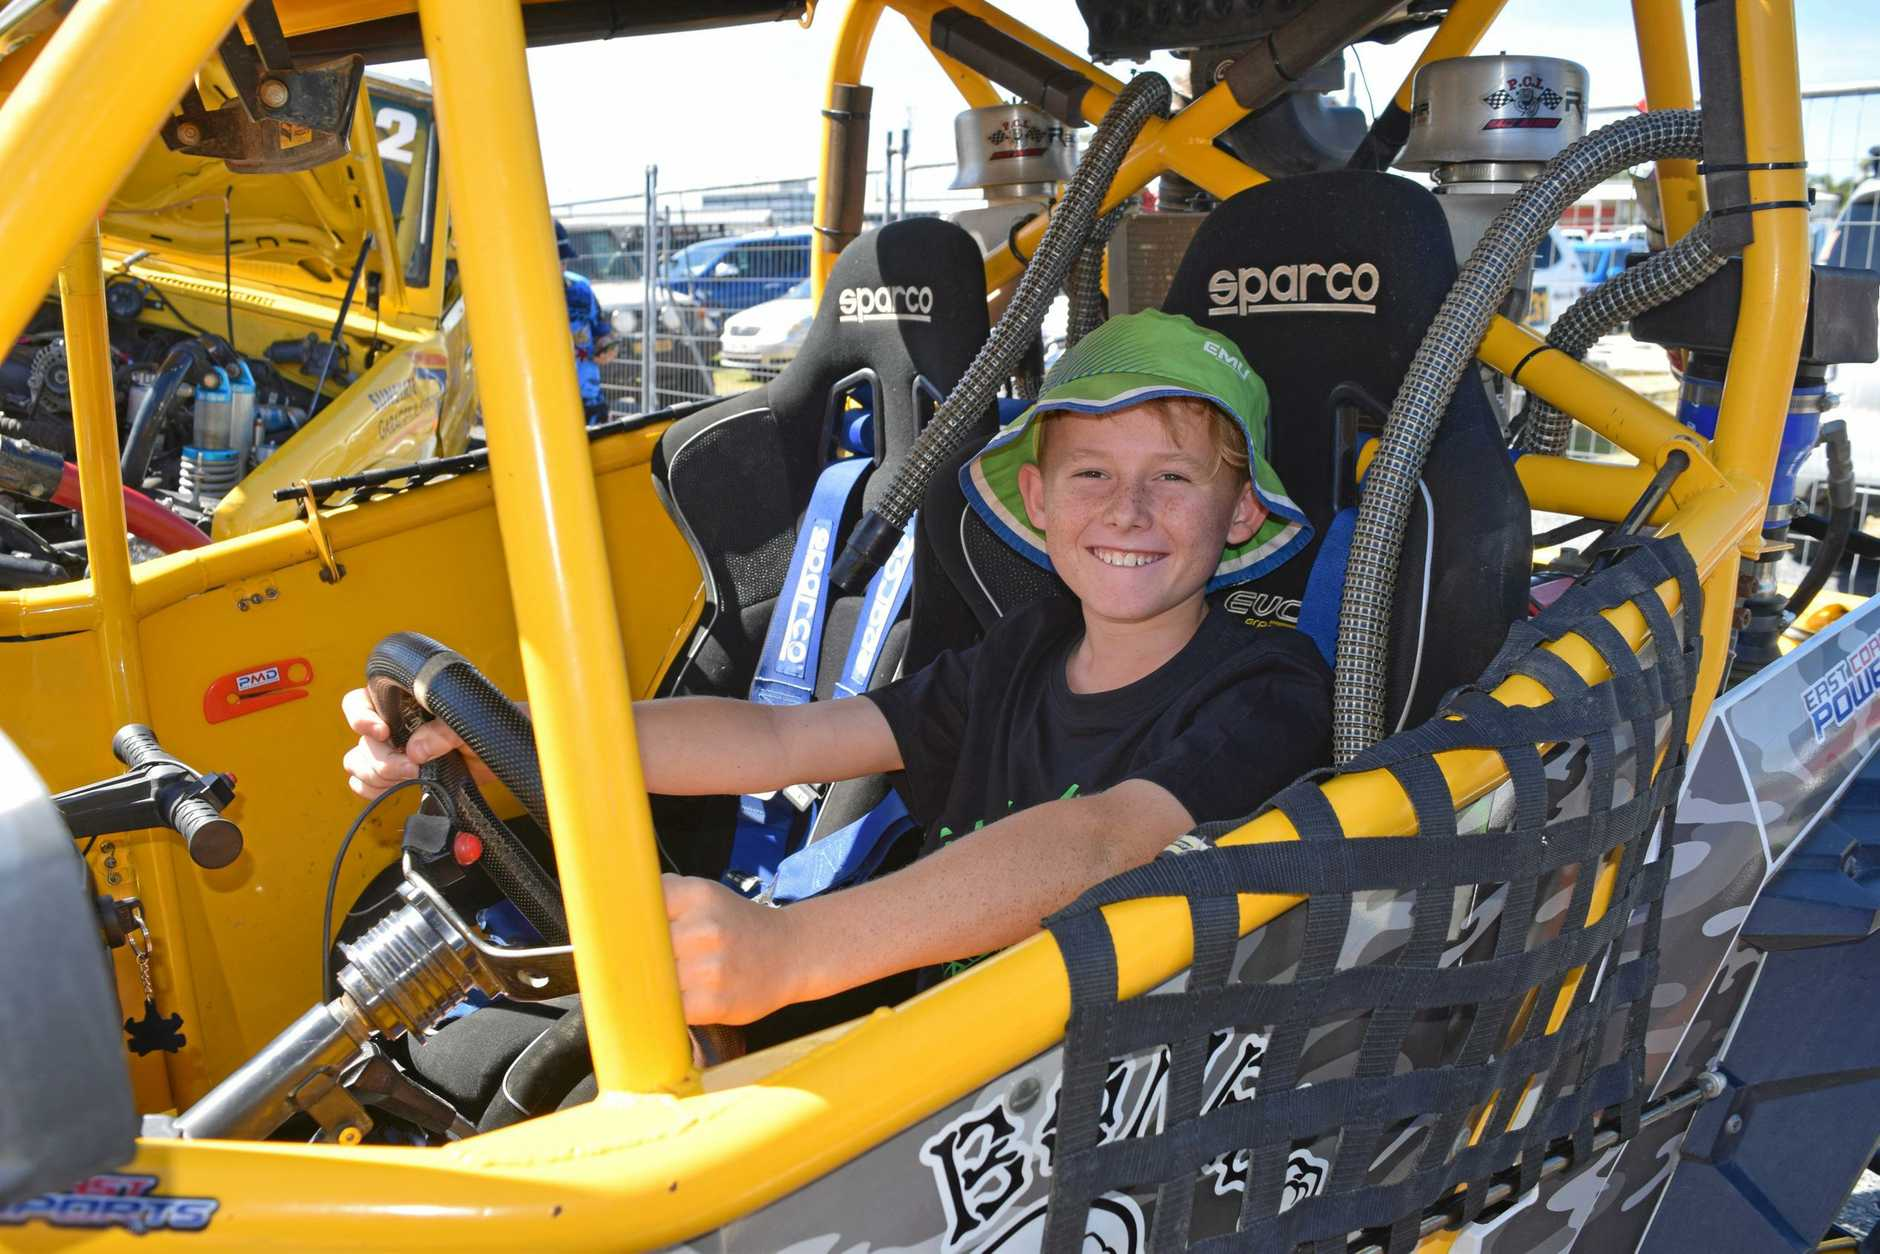 Steven Pepper from Proserpine loved trying out the toys at the Big Boys Toys Expo at Mackay Showgrounds this weekend.